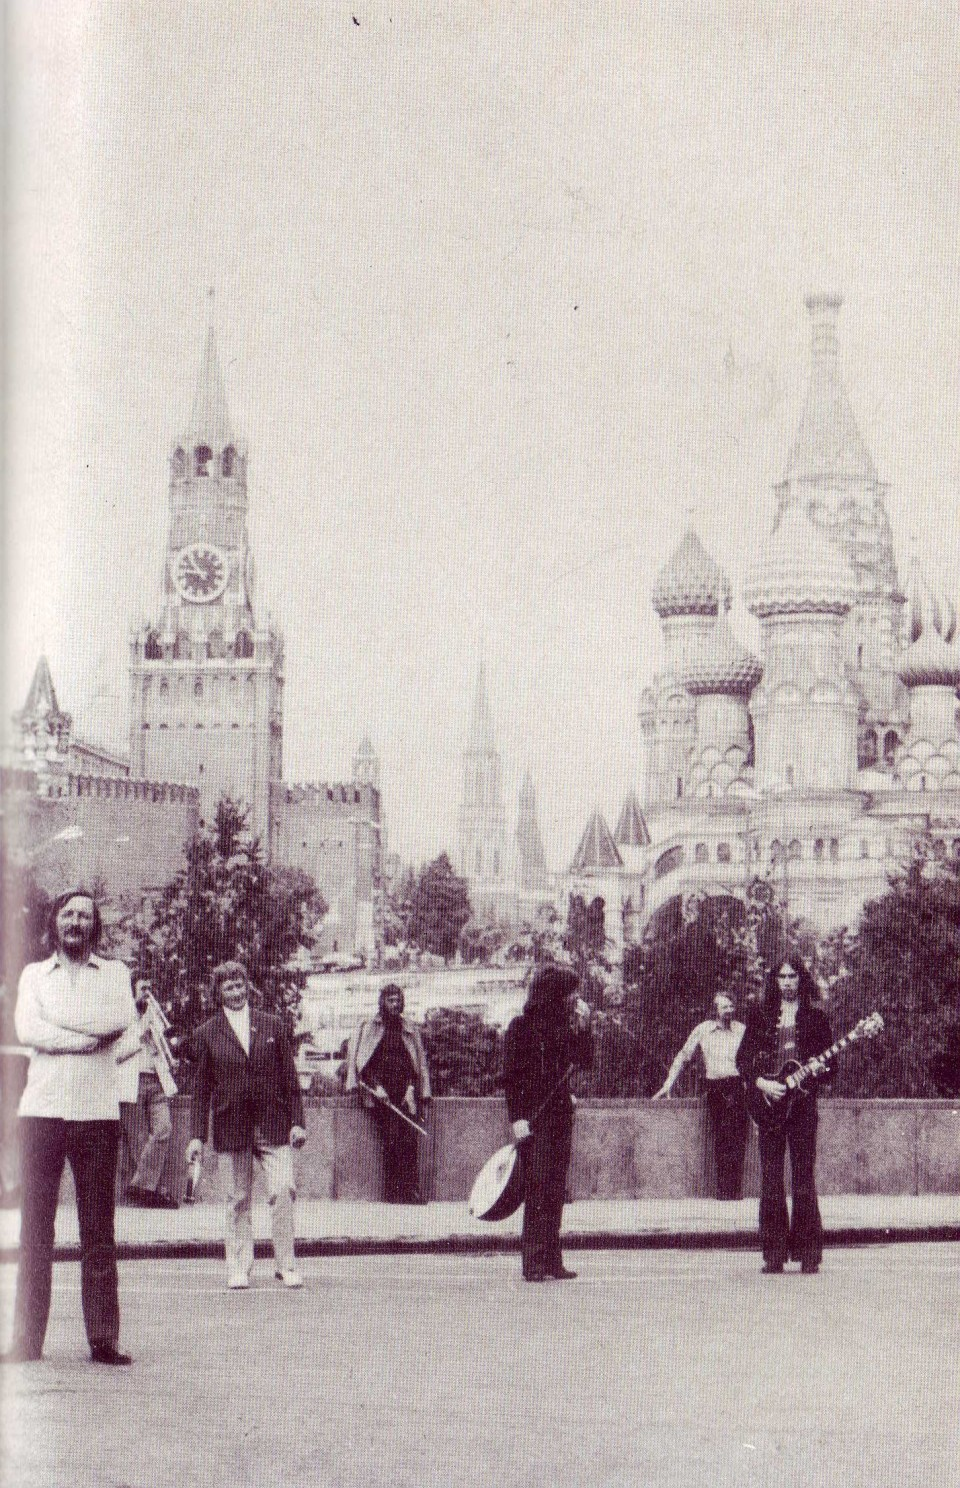 (From the book) An appropriately chaotic photoshoot for the Moscow tour.